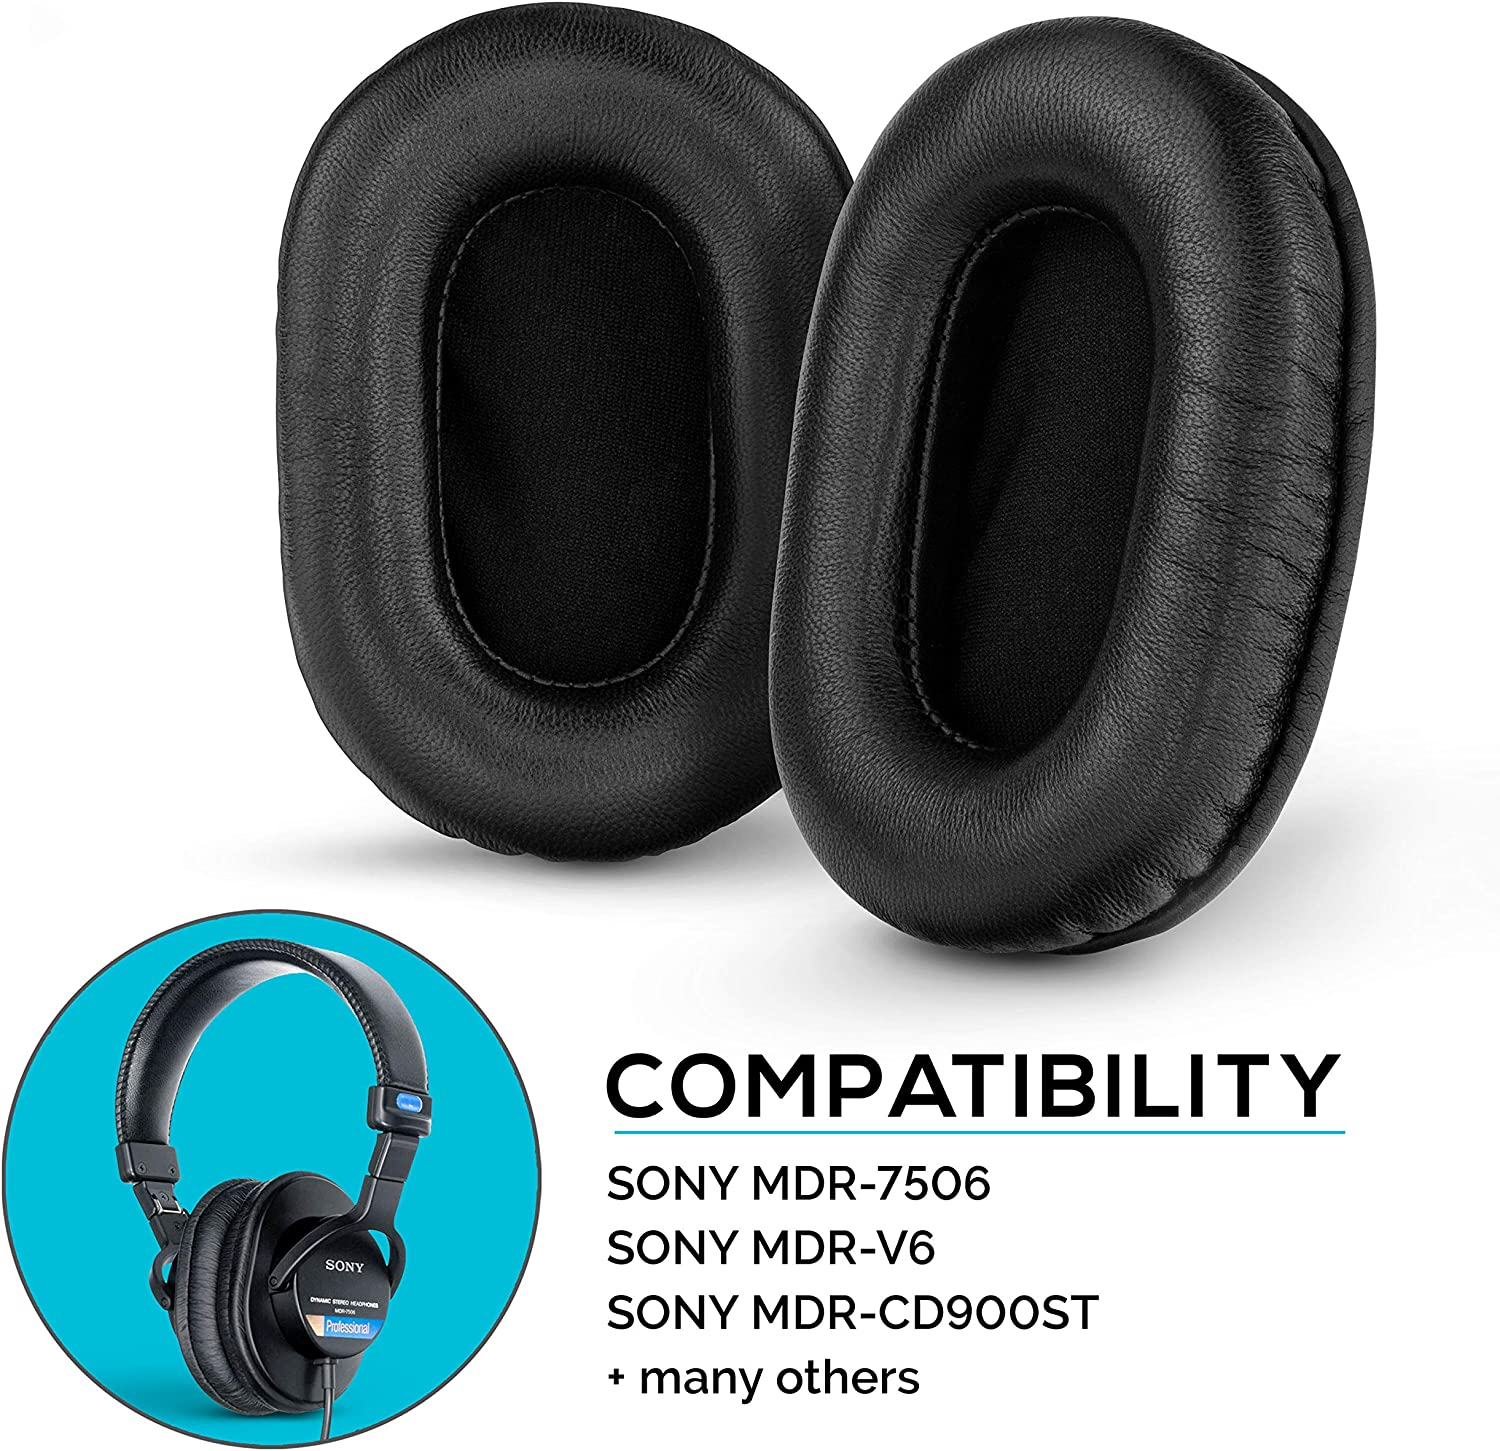 Brainwavz Sheepskin Leather Earpads for Sony MDR 7506 - V6 - CD900ST with Memory Foam Ear Pad & Suitable for Other On Ear Headphones